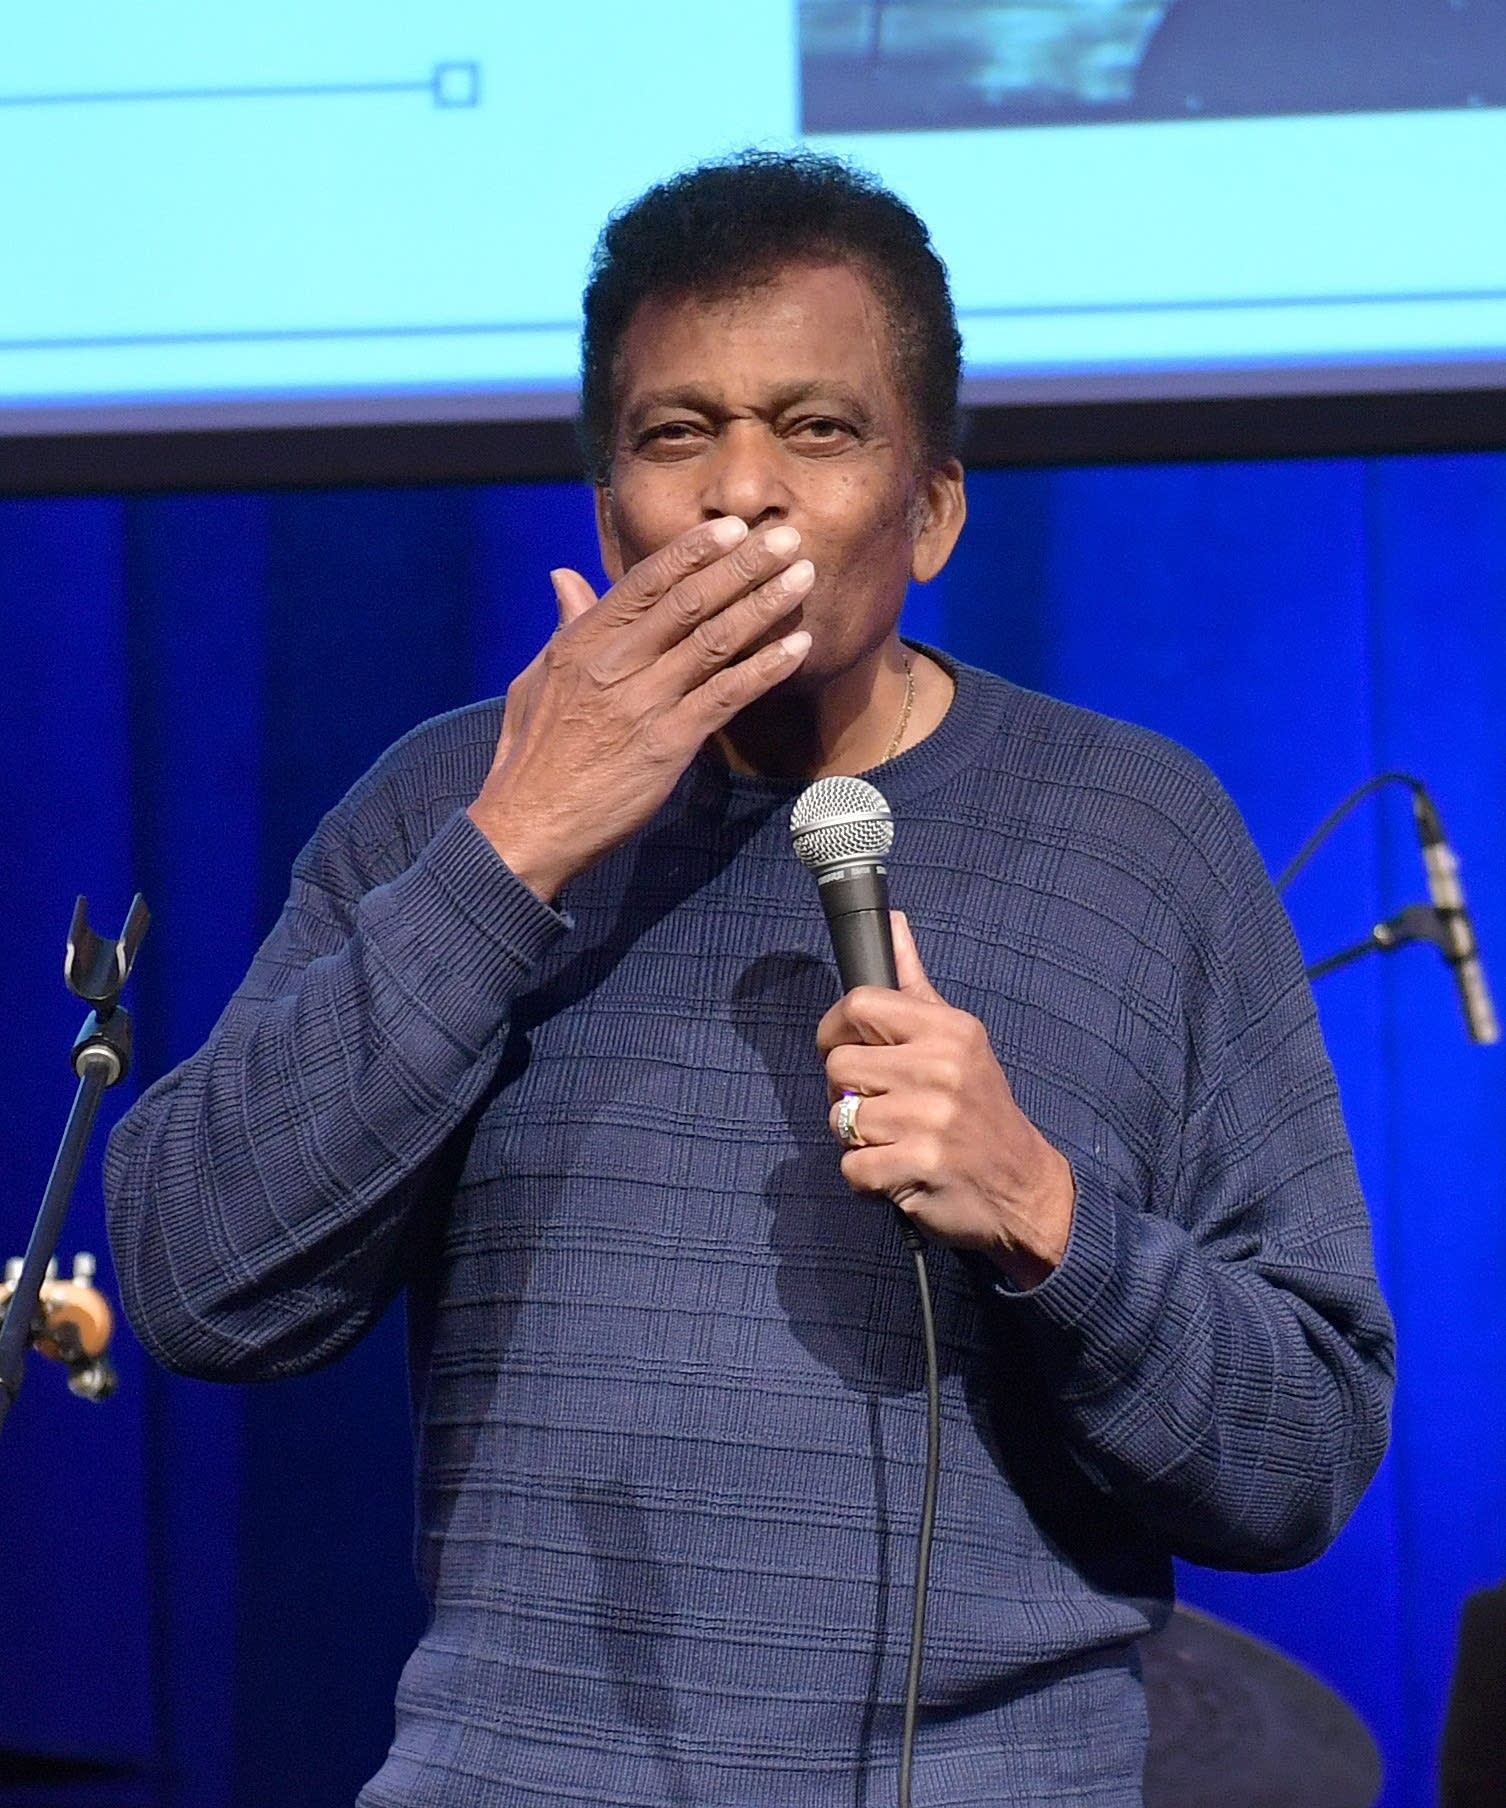 Charley Pride photo from Getty